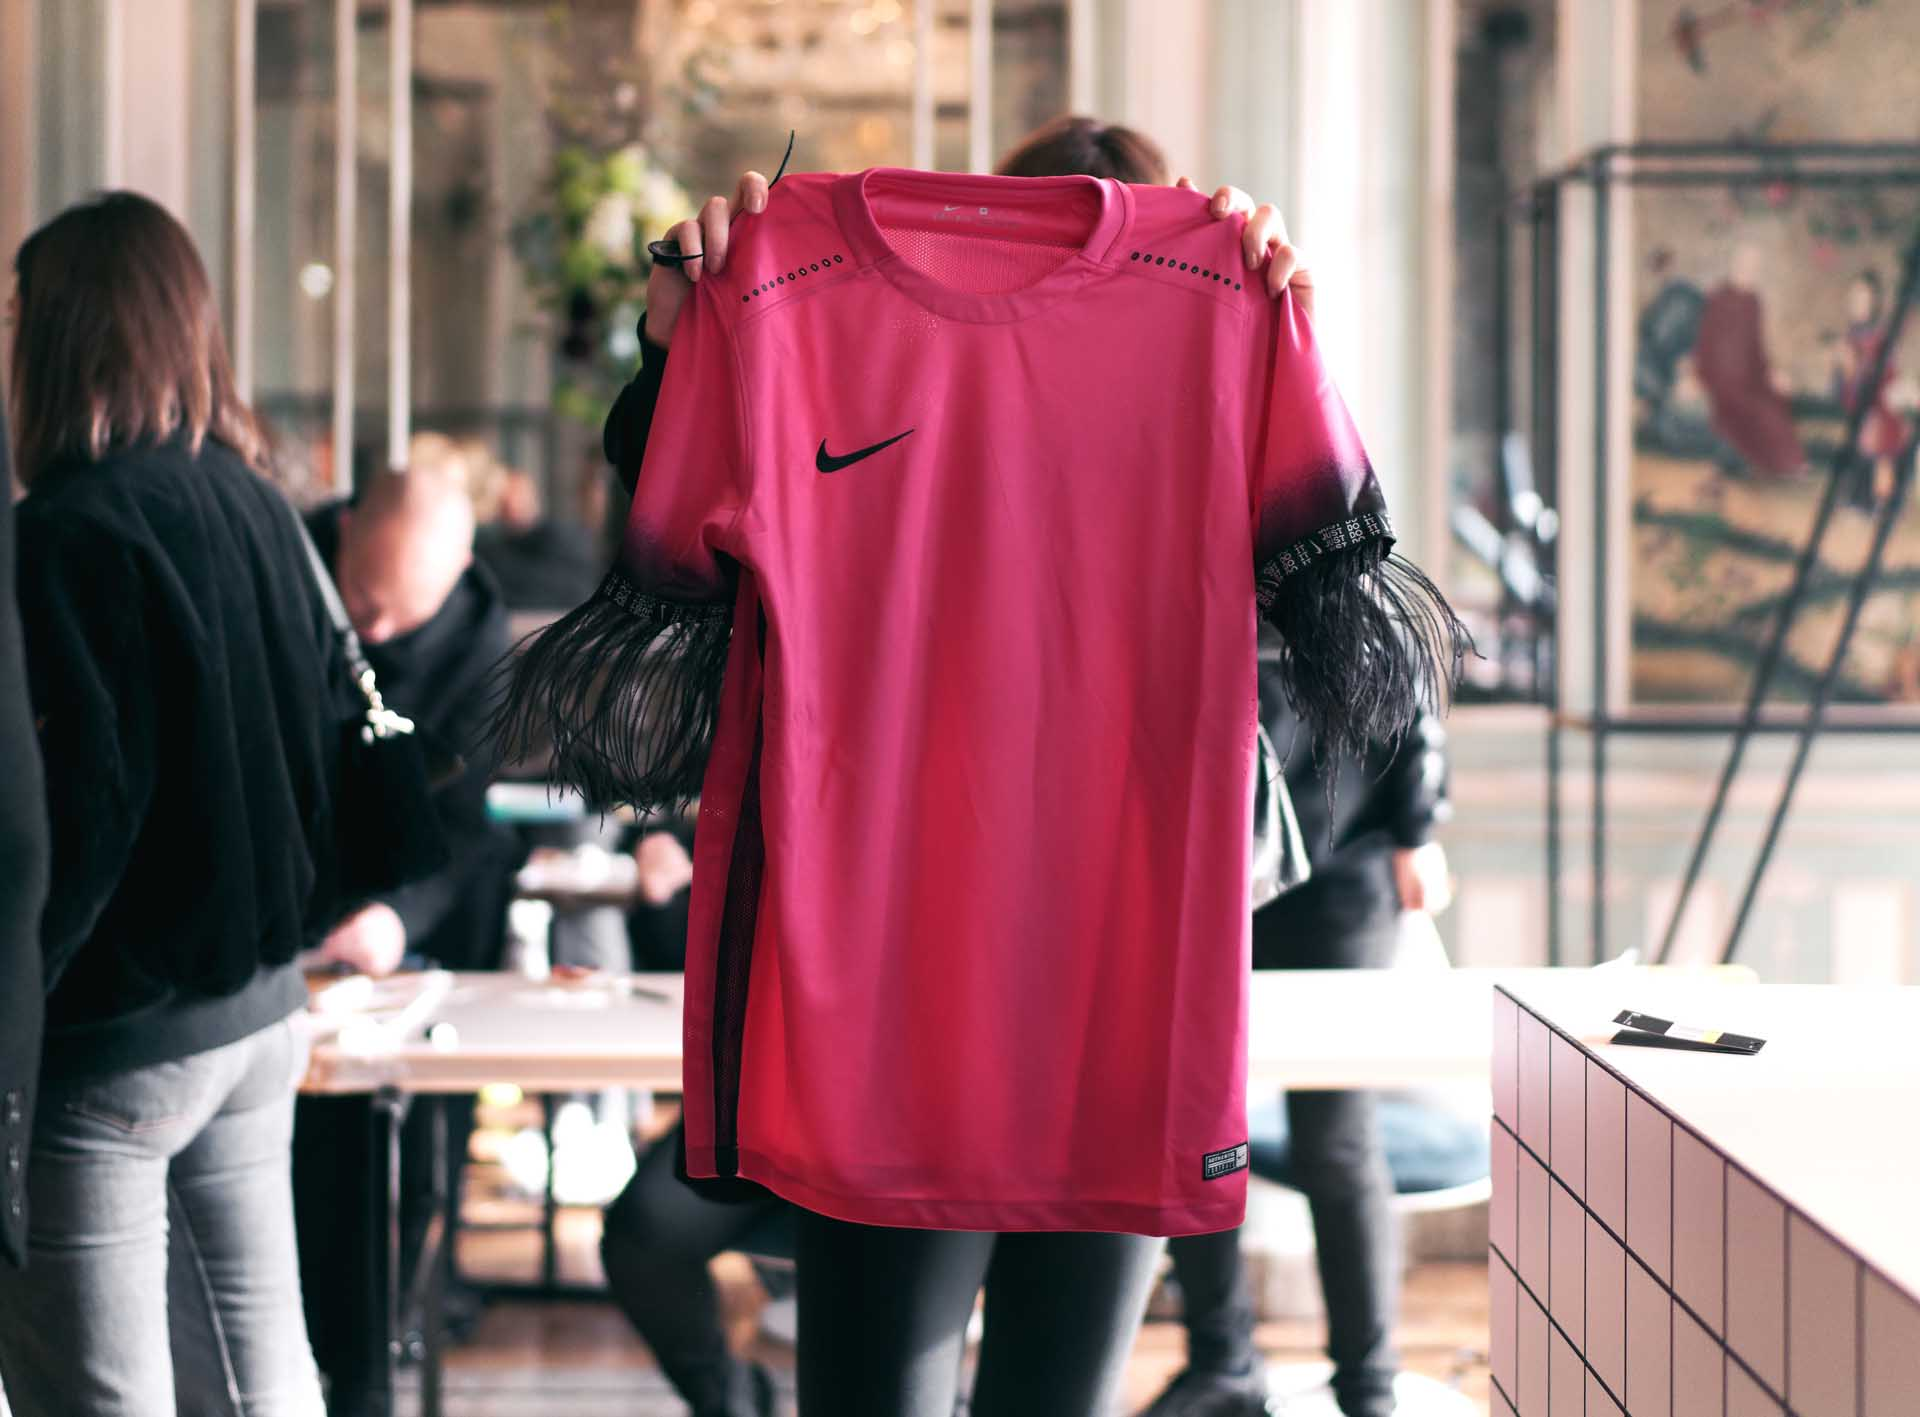 body-nike-jersey-customisation-paris-min.jpg